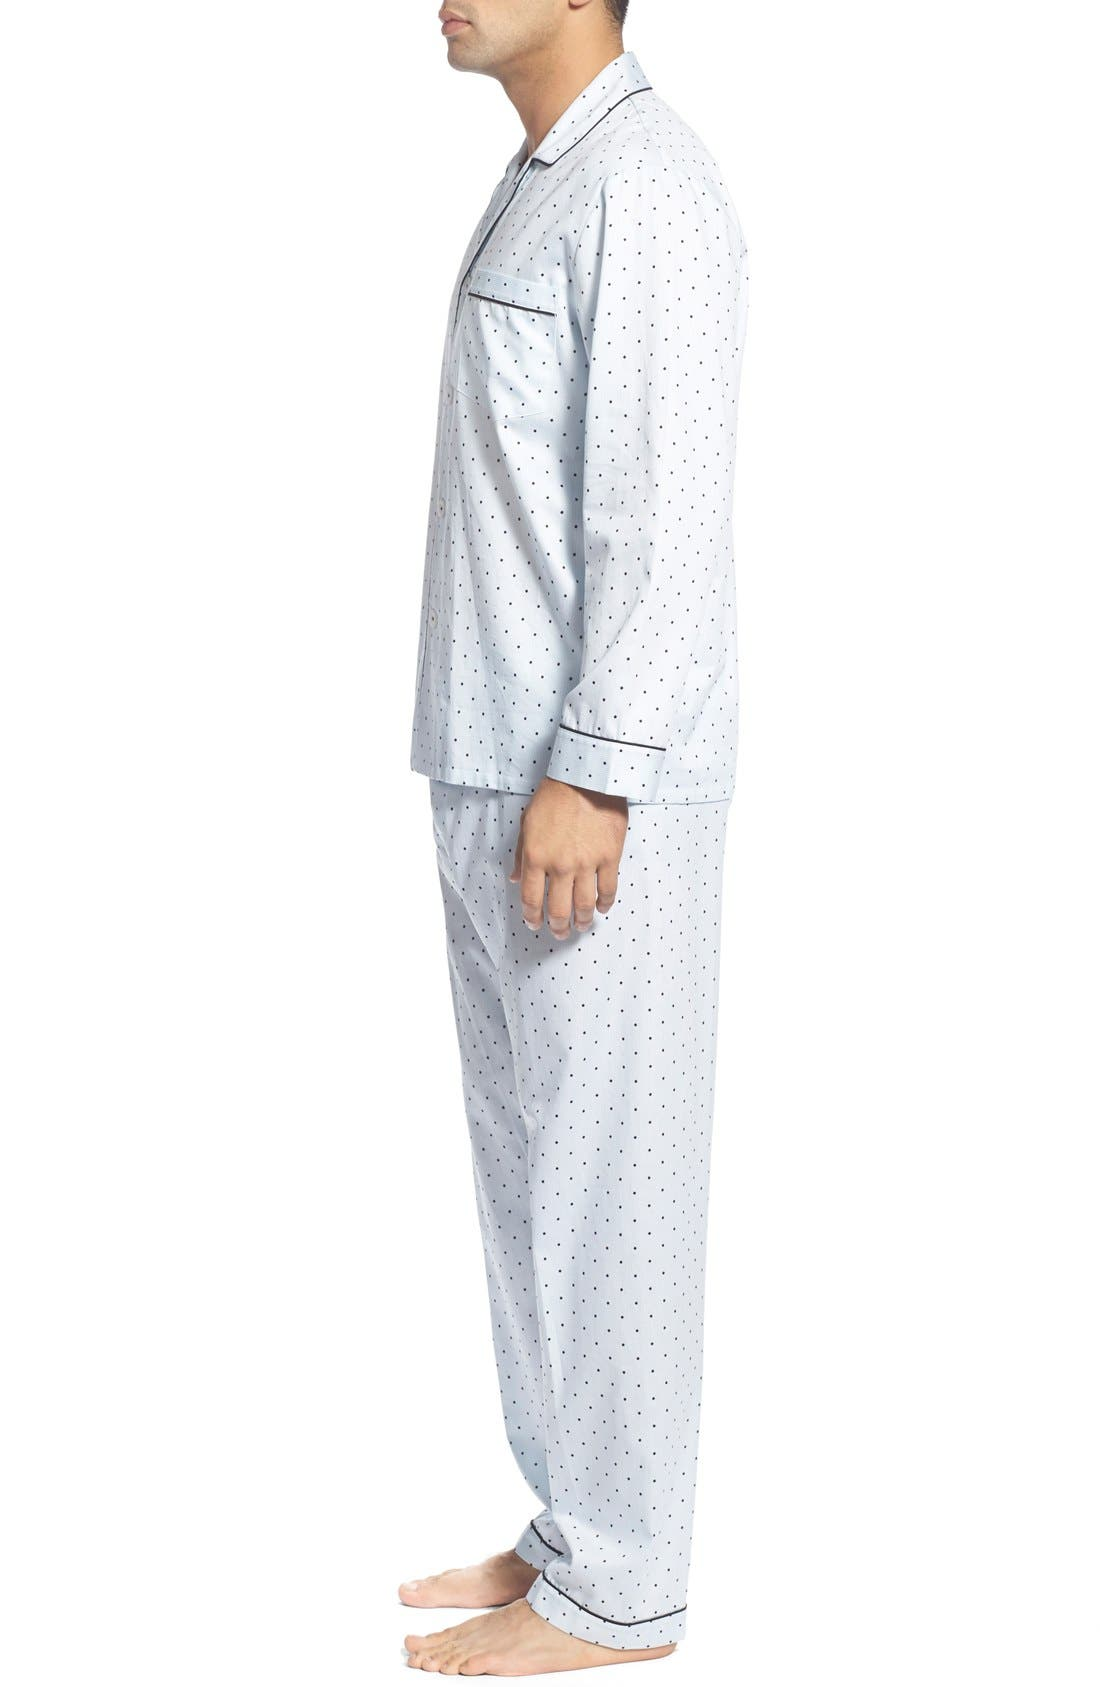 'Twilight' Cotton Pajamas,                             Alternate thumbnail 3, color,                             Navy Dots